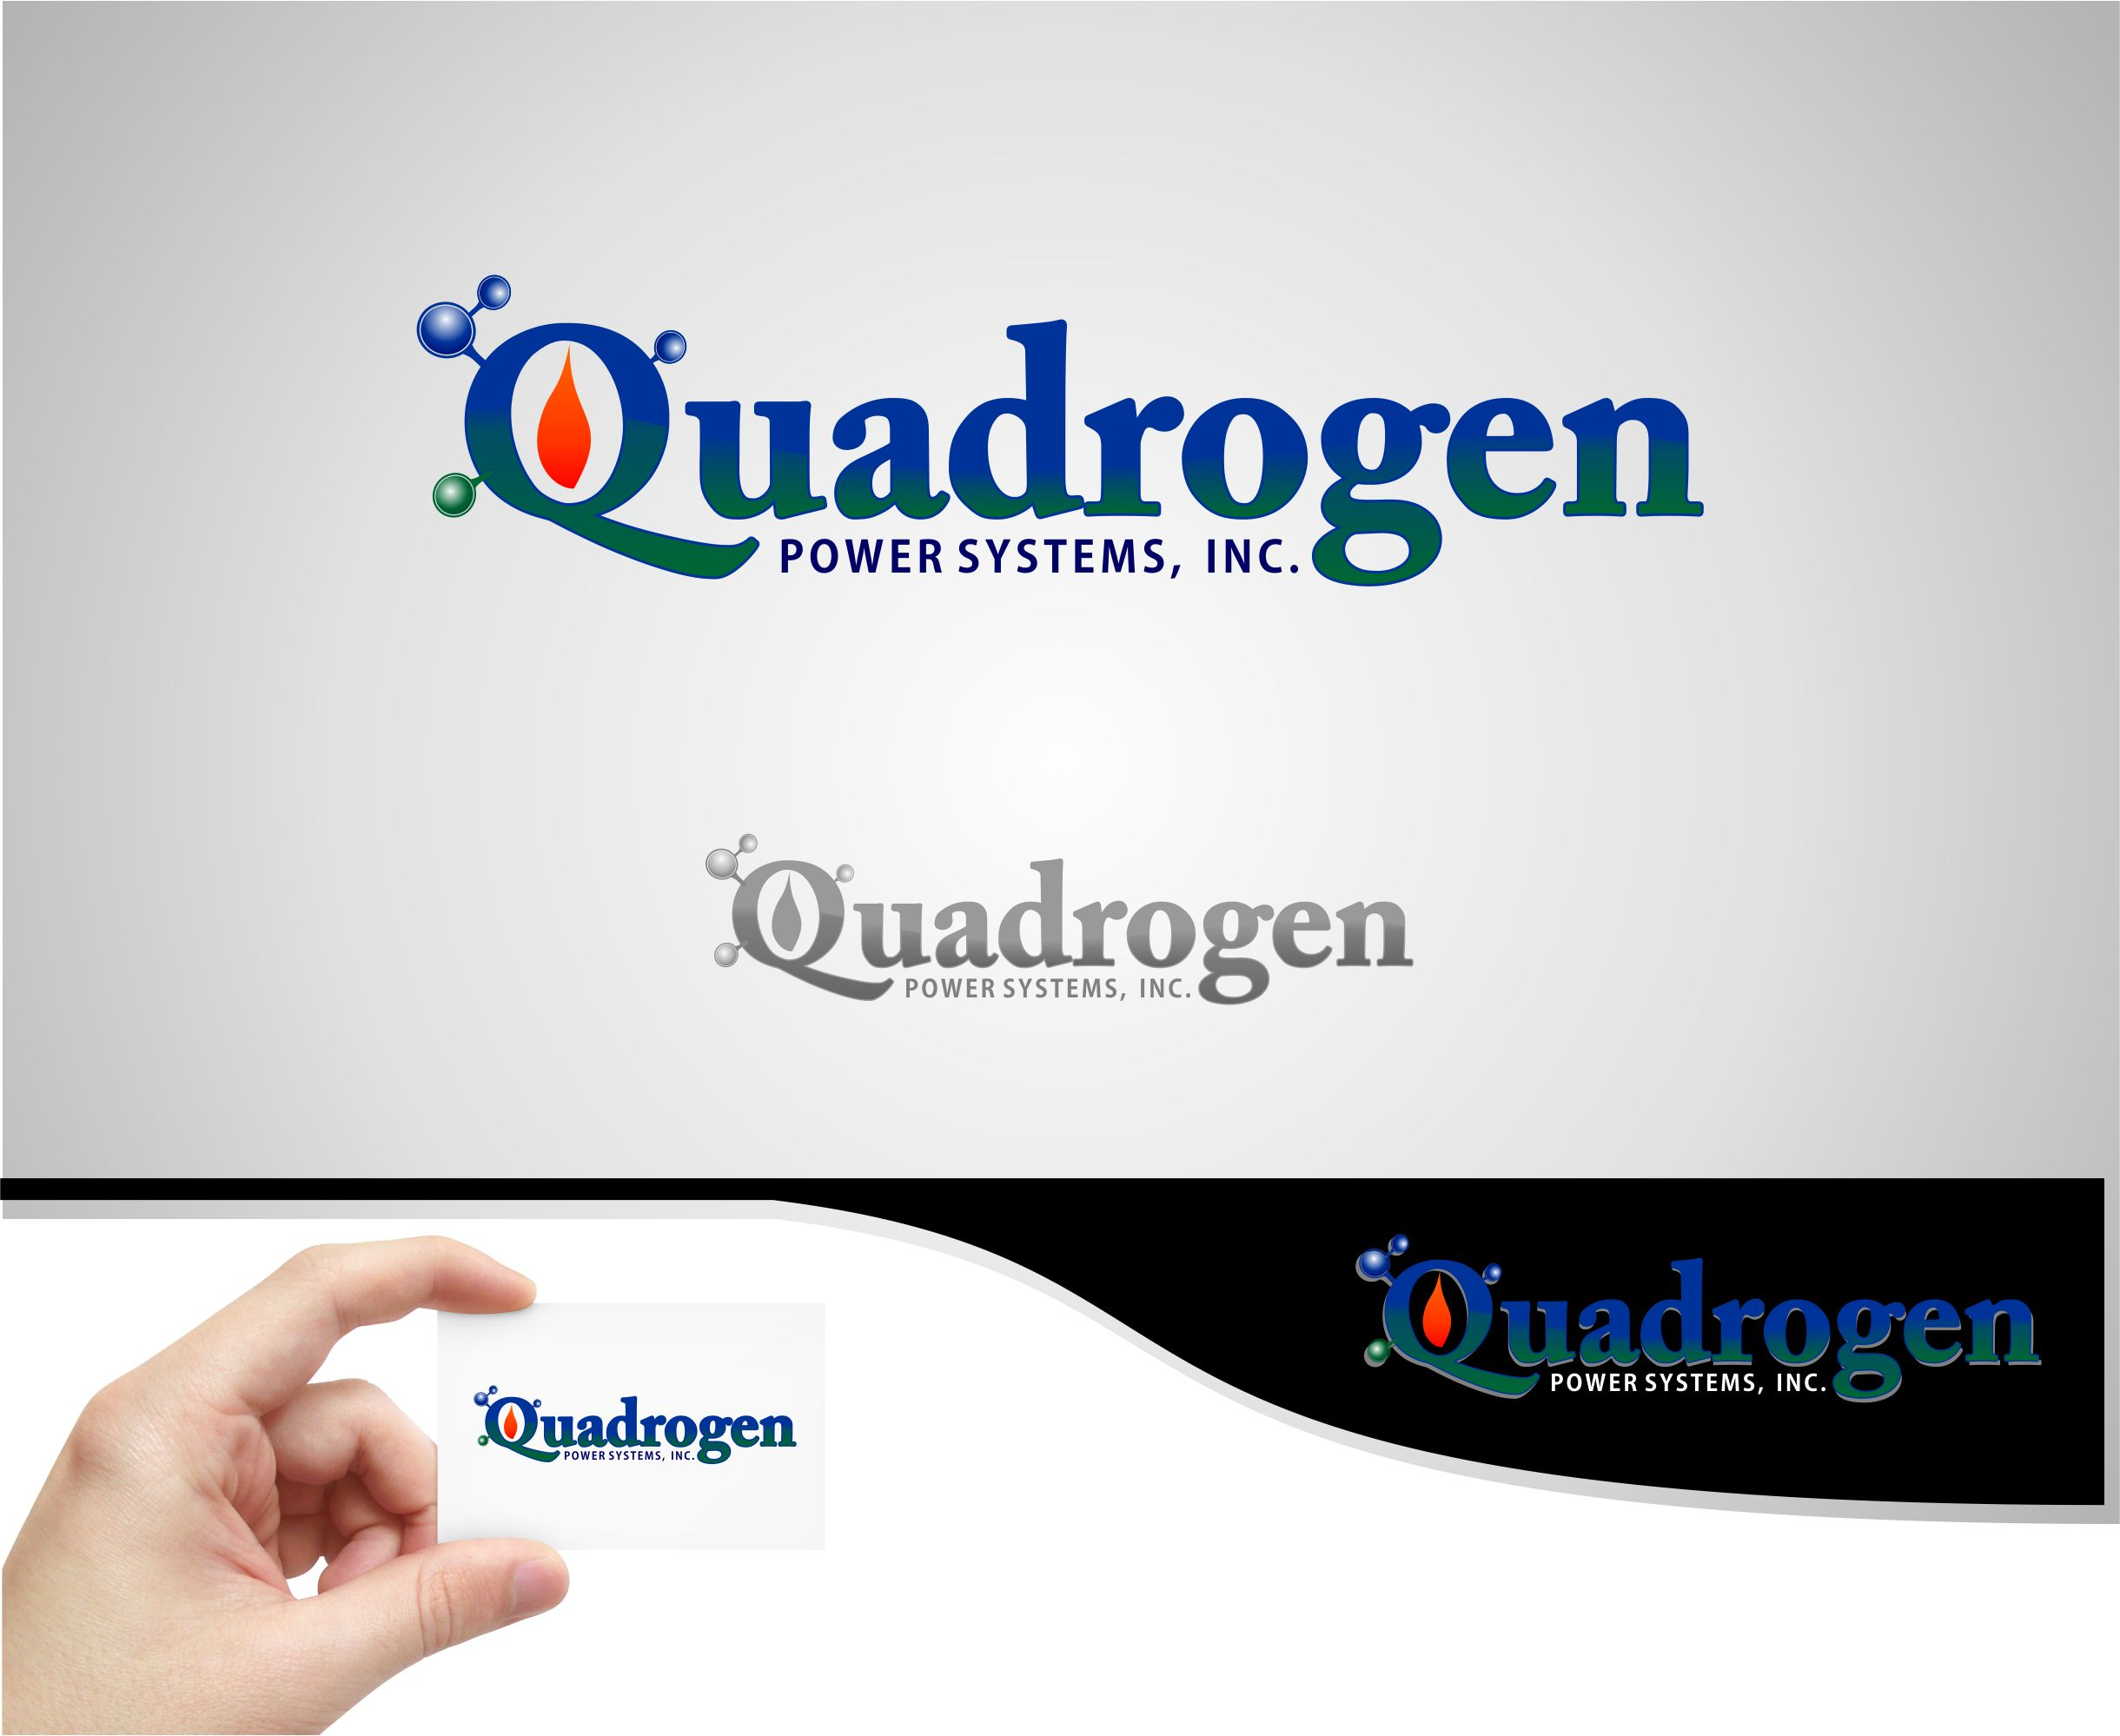 Logo Design by joca - Entry No. 125 in the Logo Design Contest New Logo Design for Quadrogen Power Systems, Inc.